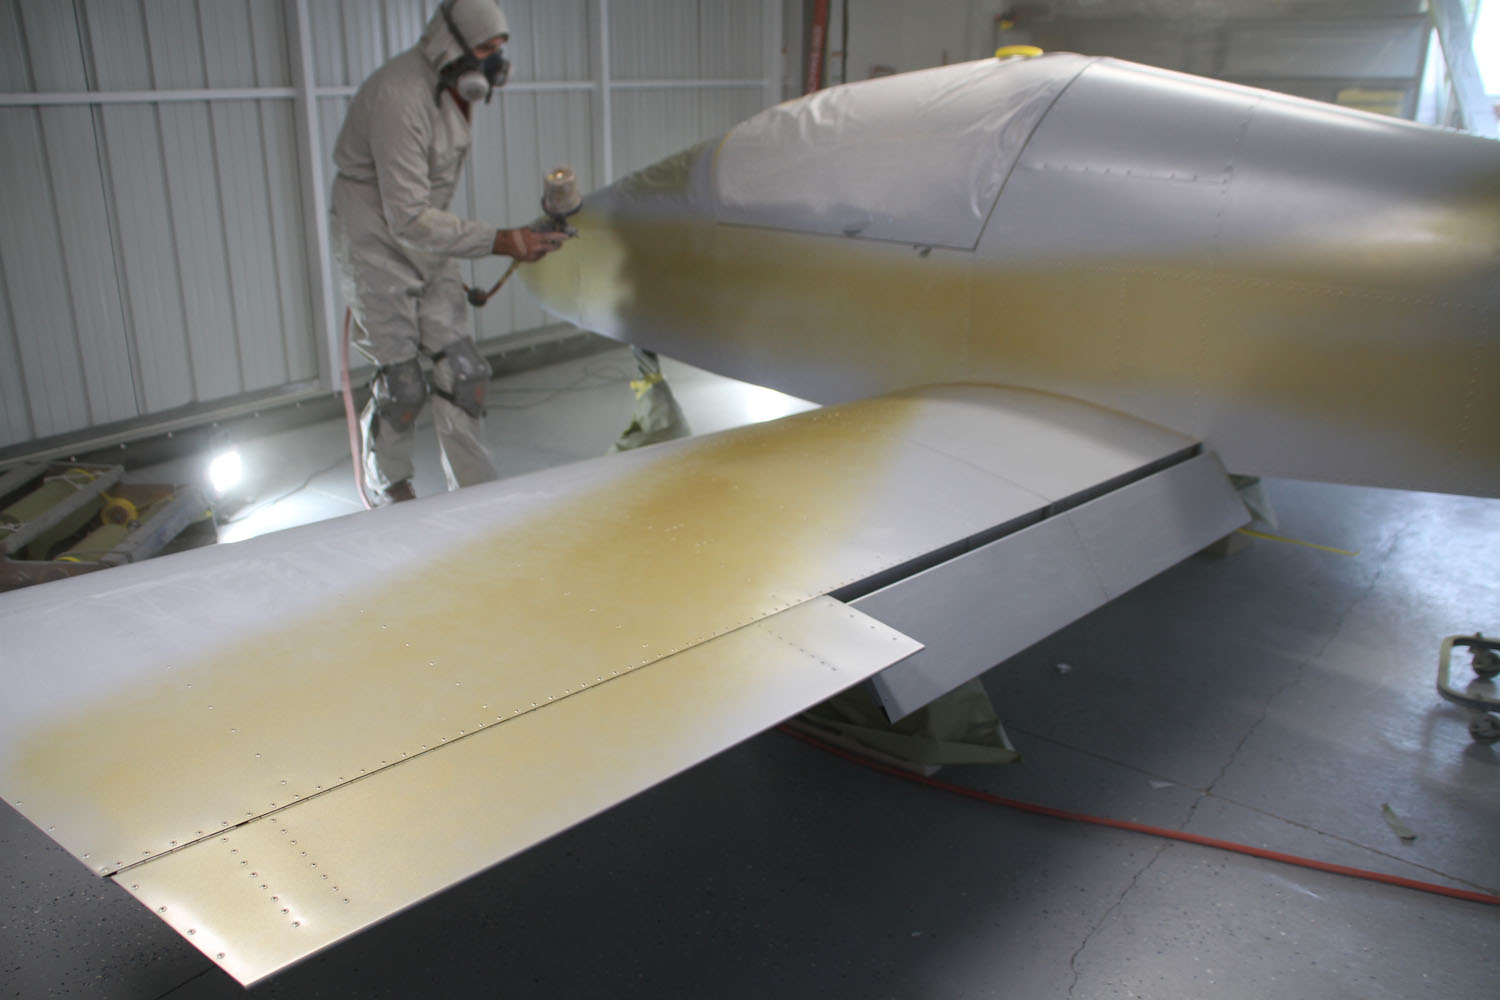 After lightly sanding the primer, Stahr applies the gold pin striping free-hand. Unlike some airplane painters, Stahr likes to start with an